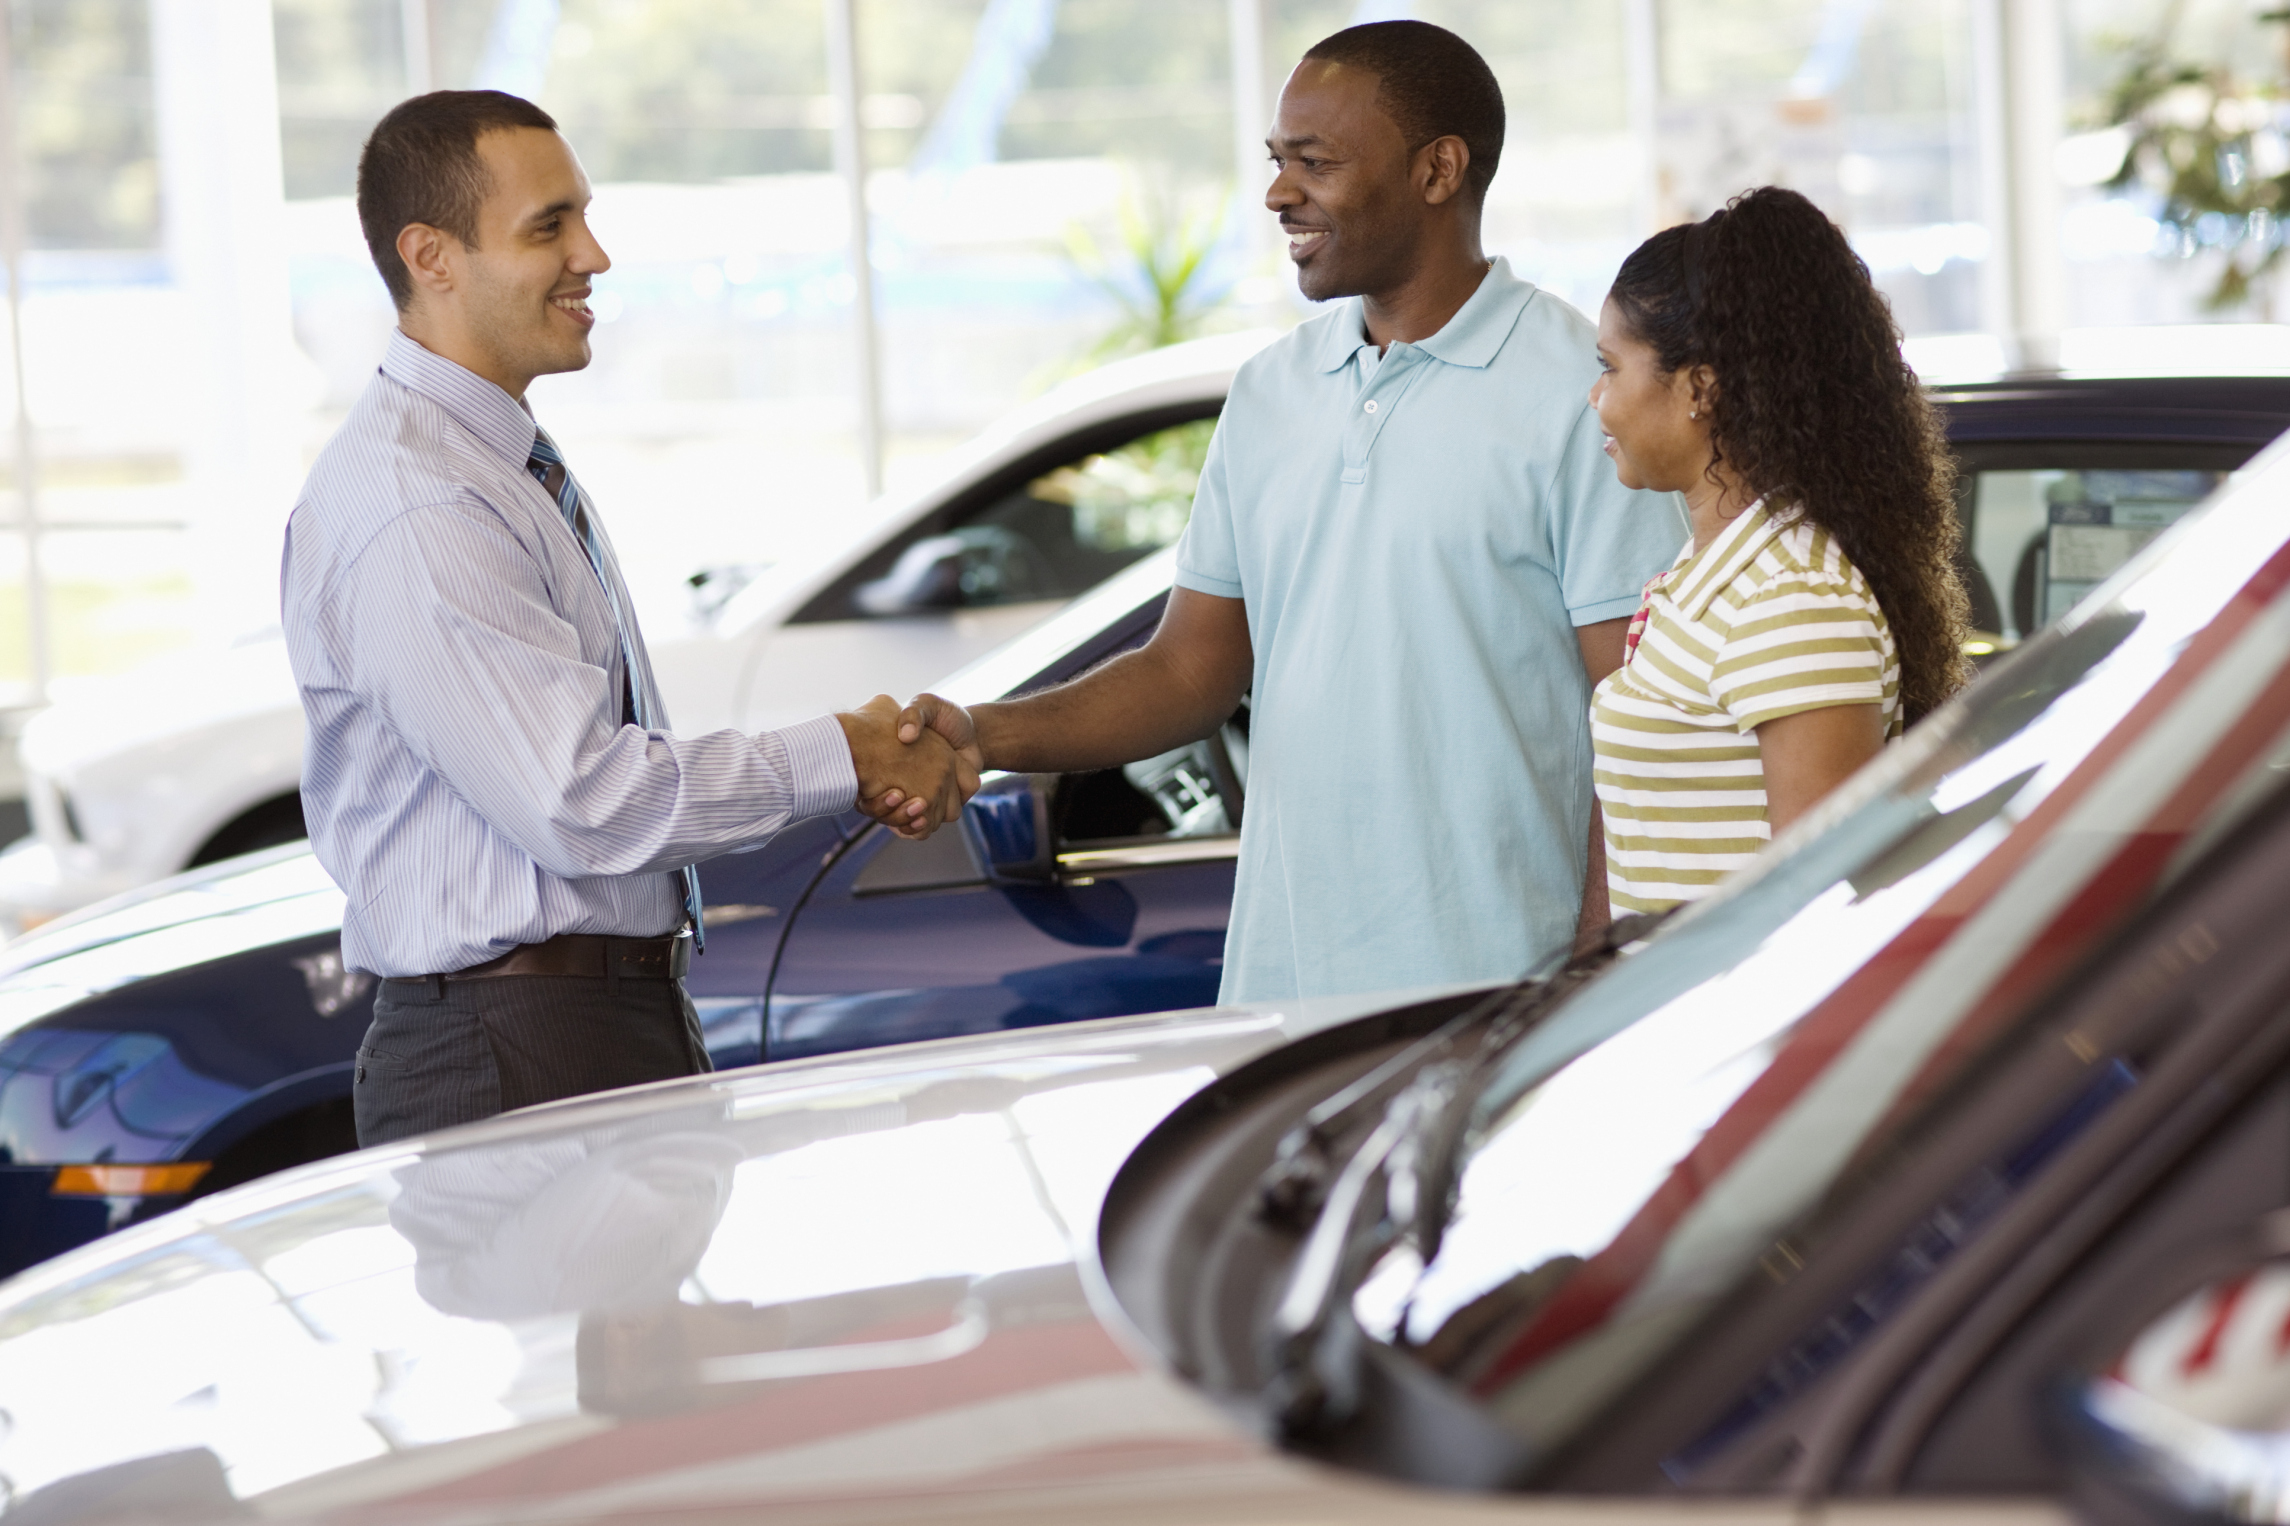 Beautiful At Bob Howard CJDR, We Do Our Best To Provide You With The Ultimate  Car Buying And Servicing Experience. We Know That You Have Many Options  When It Comes To ...